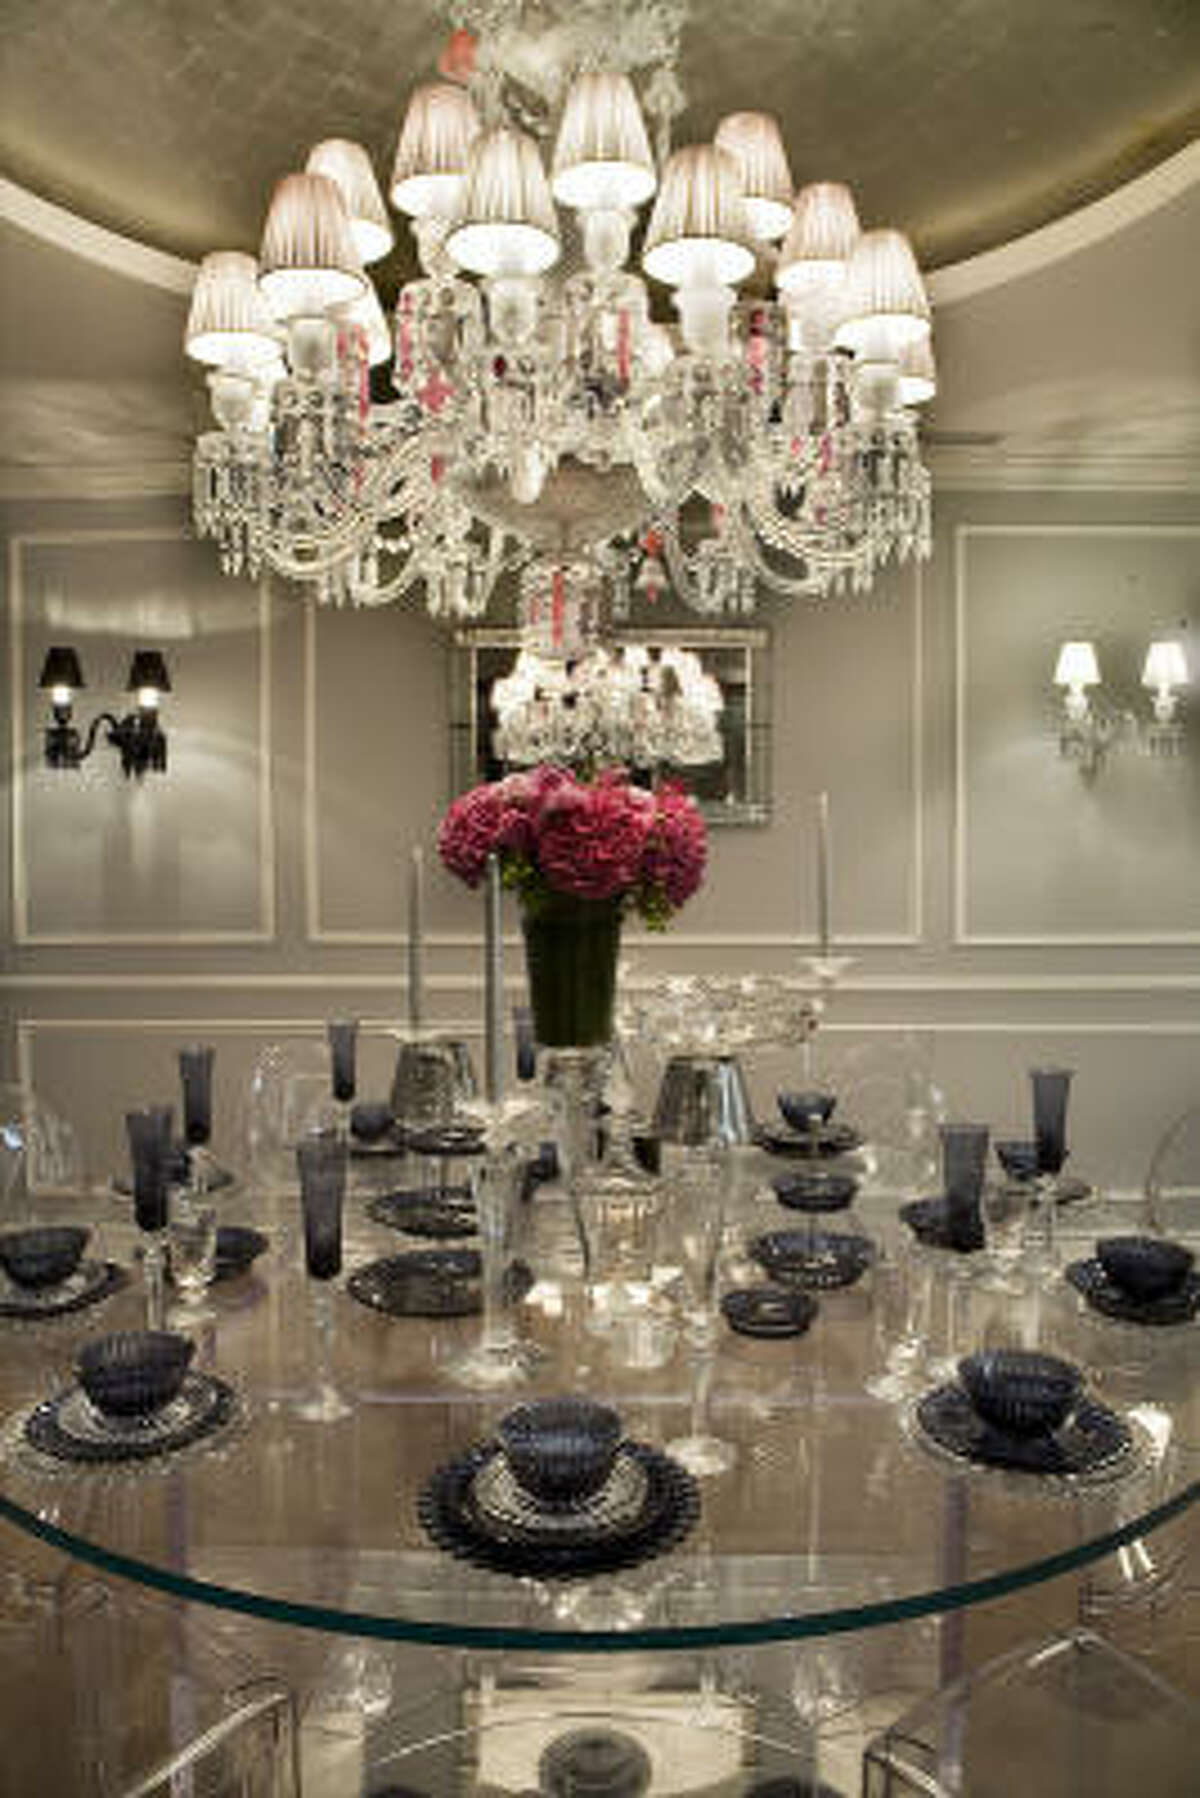 The Houston Design Center's holiday tabletop tour and open house features designs by luxury brands such as Baccarat, above.